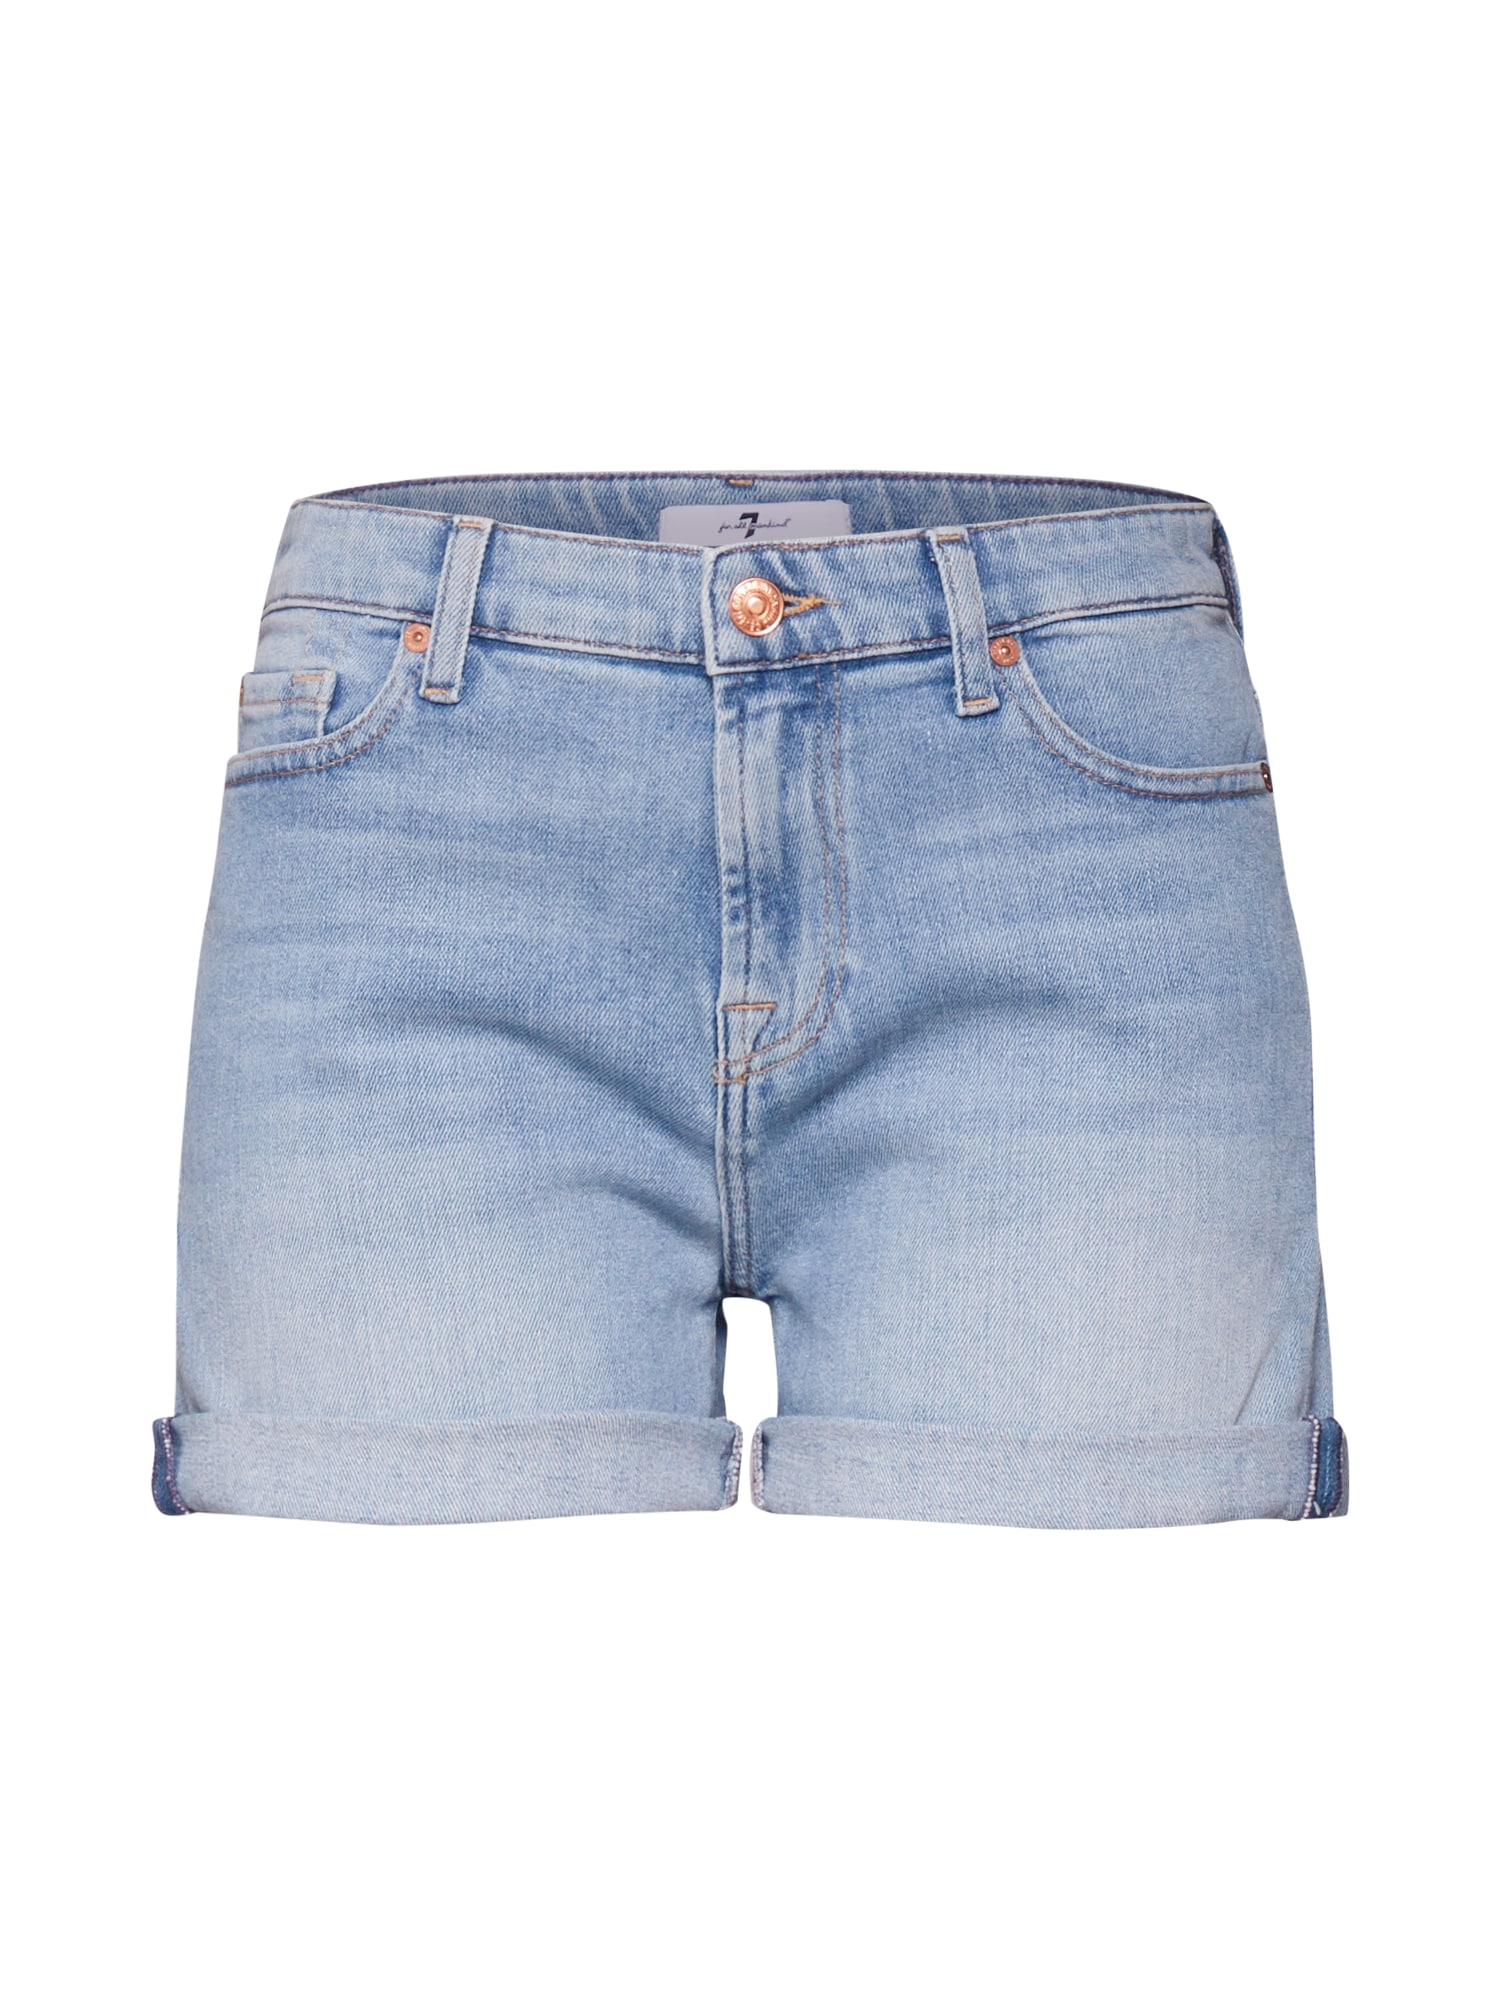 7 for all mankind Džinsai 'BOY SHORTS' tamsiai (džinso) mėlyna